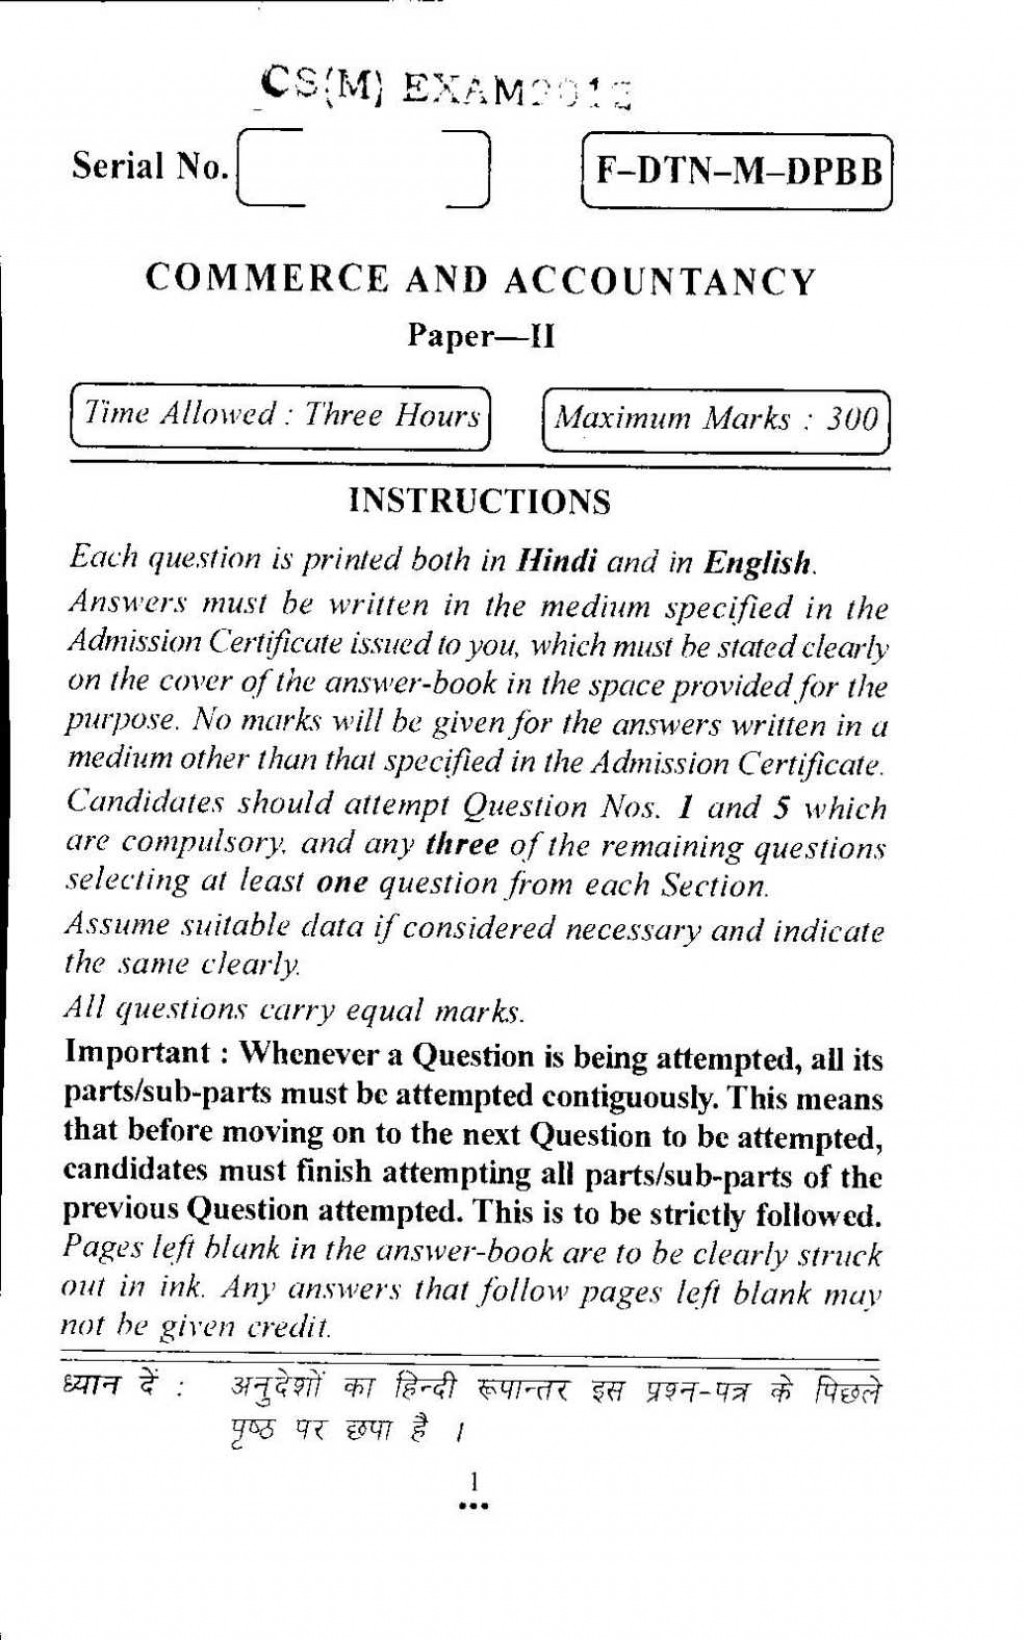 011 Civil Services Examination Commerce And Accountancy Paper Ii Previous Years Que Essay Example Marvelous Racism Argumentative Topics Persuasive In Canada Large